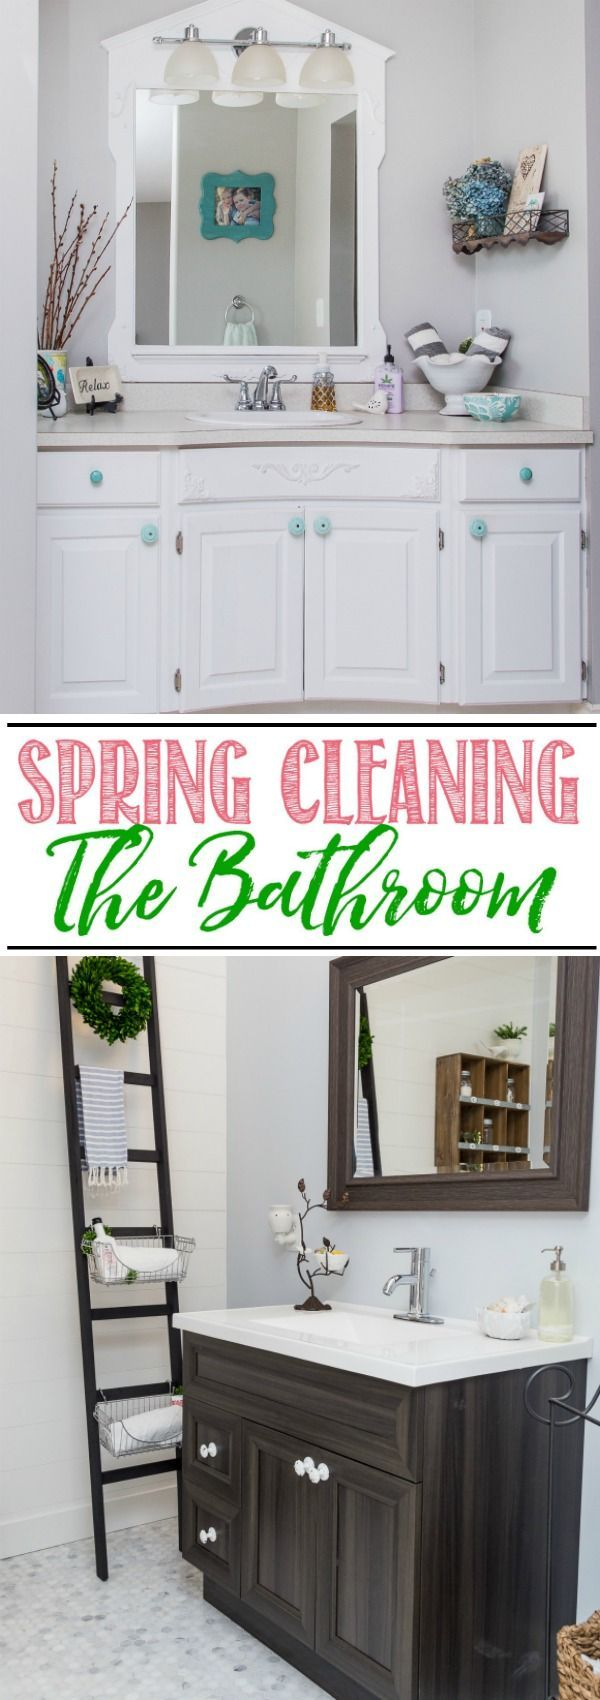 Bathroom Spring Cleaning Guide - Everything you need to get your bathroom cleaned from top to bottom! Free printable bathroom cleaning checklist included.